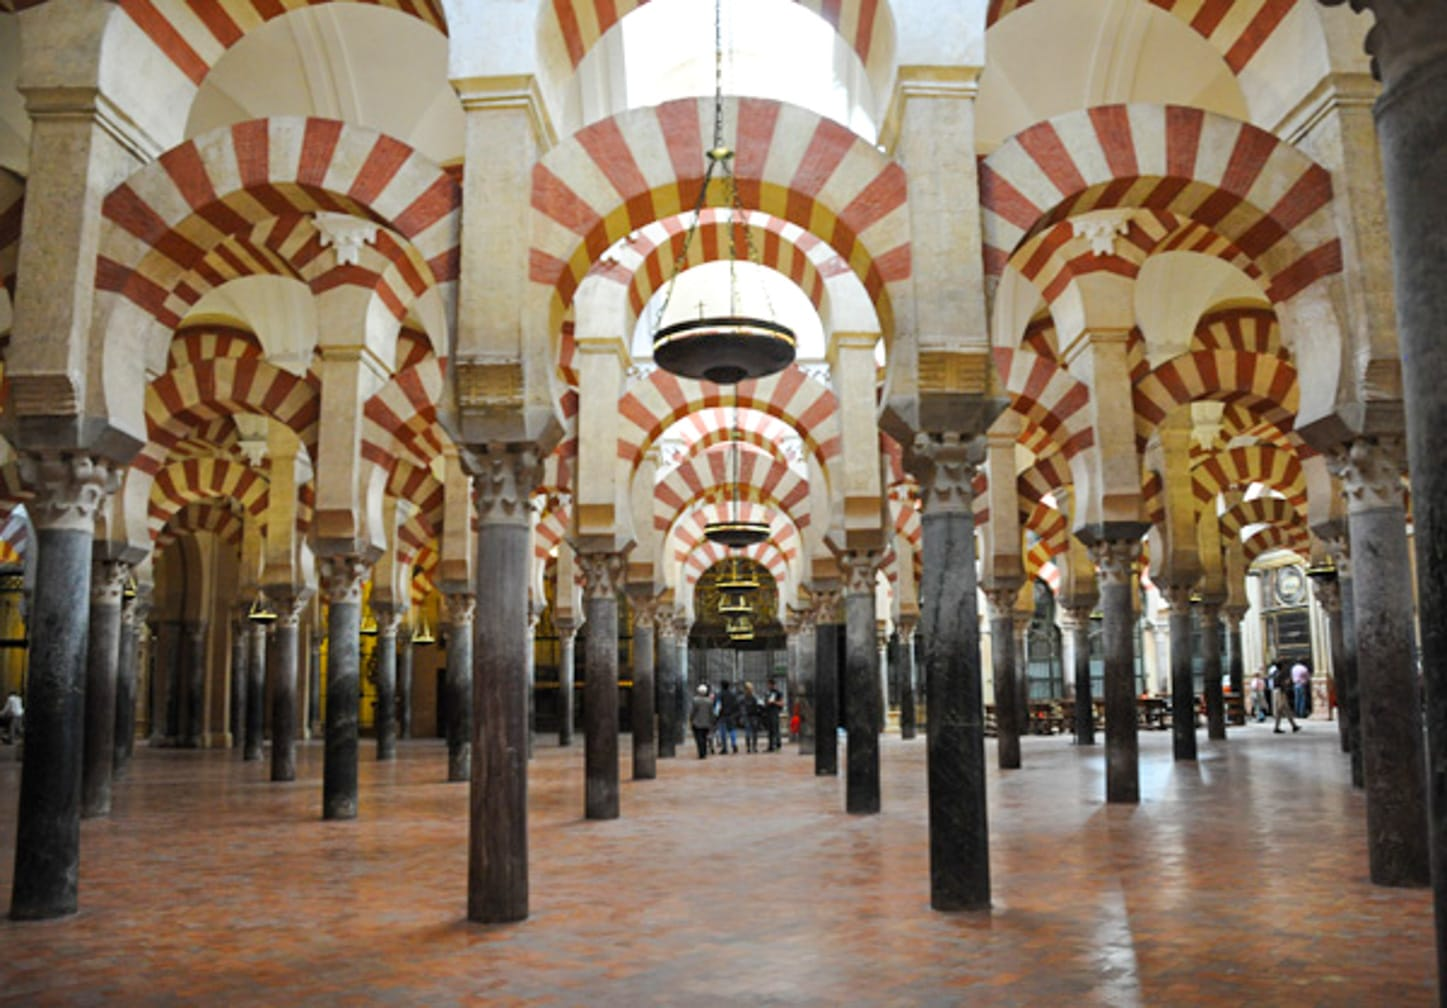 Mosque on the Al-Andalus: Southern Spain by Luxury Rail journey